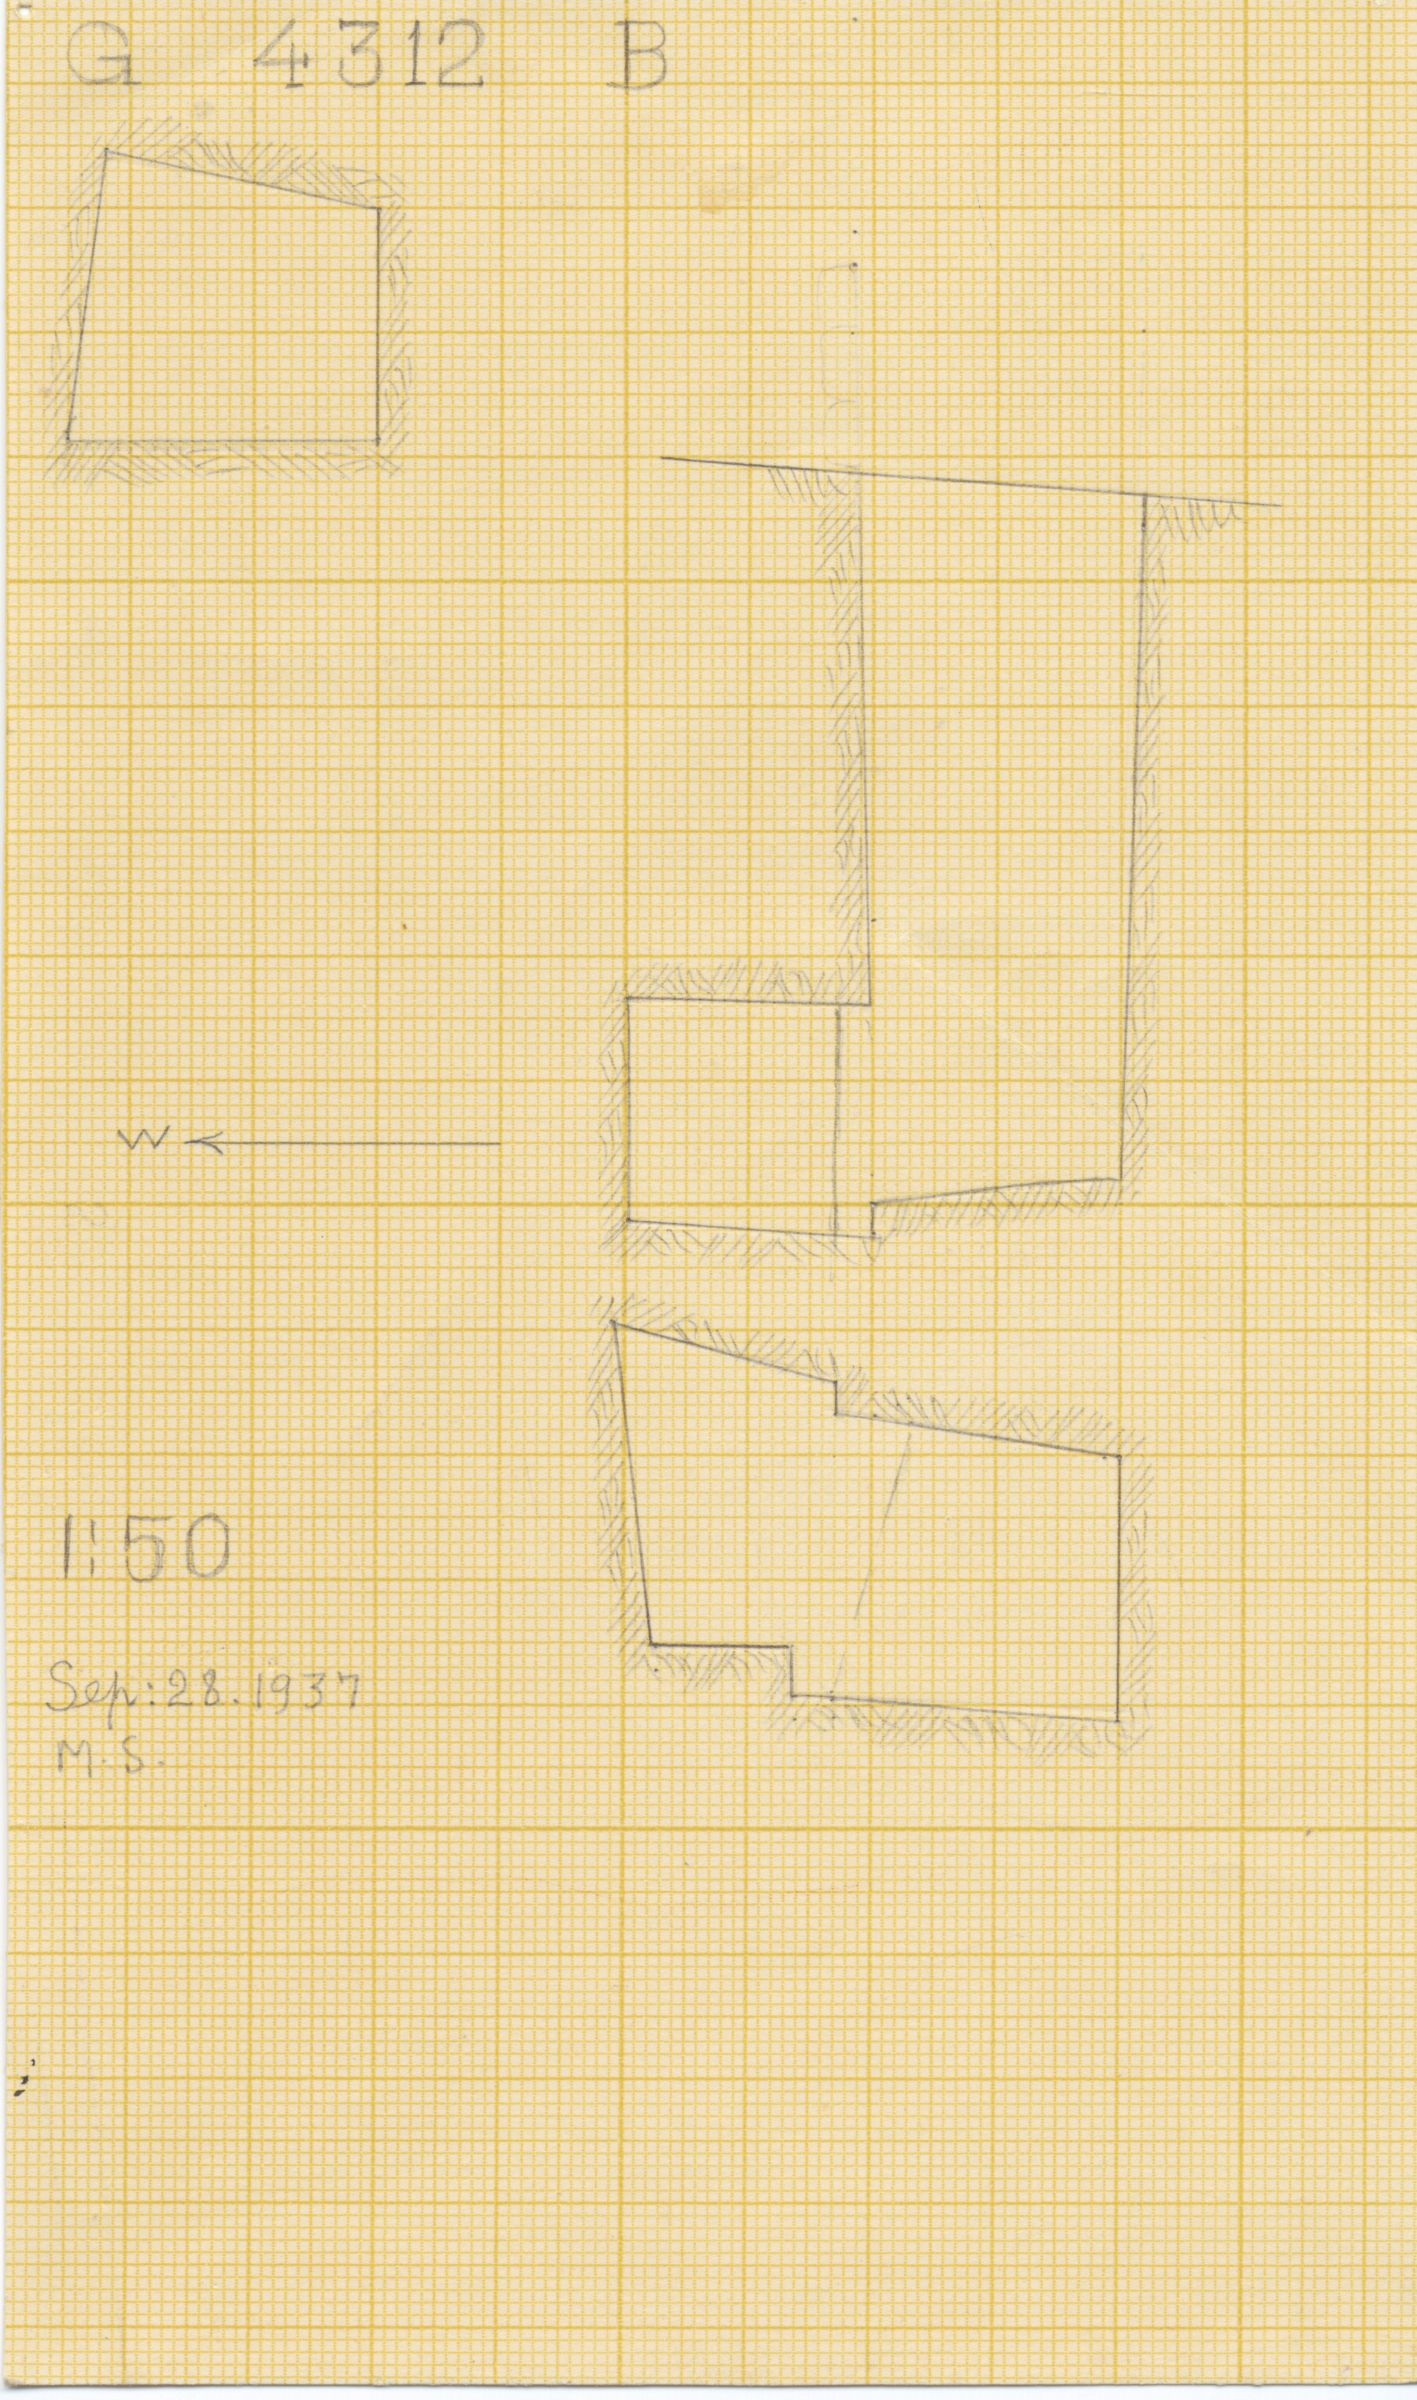 Maps and plans: G 4312, Shaft B